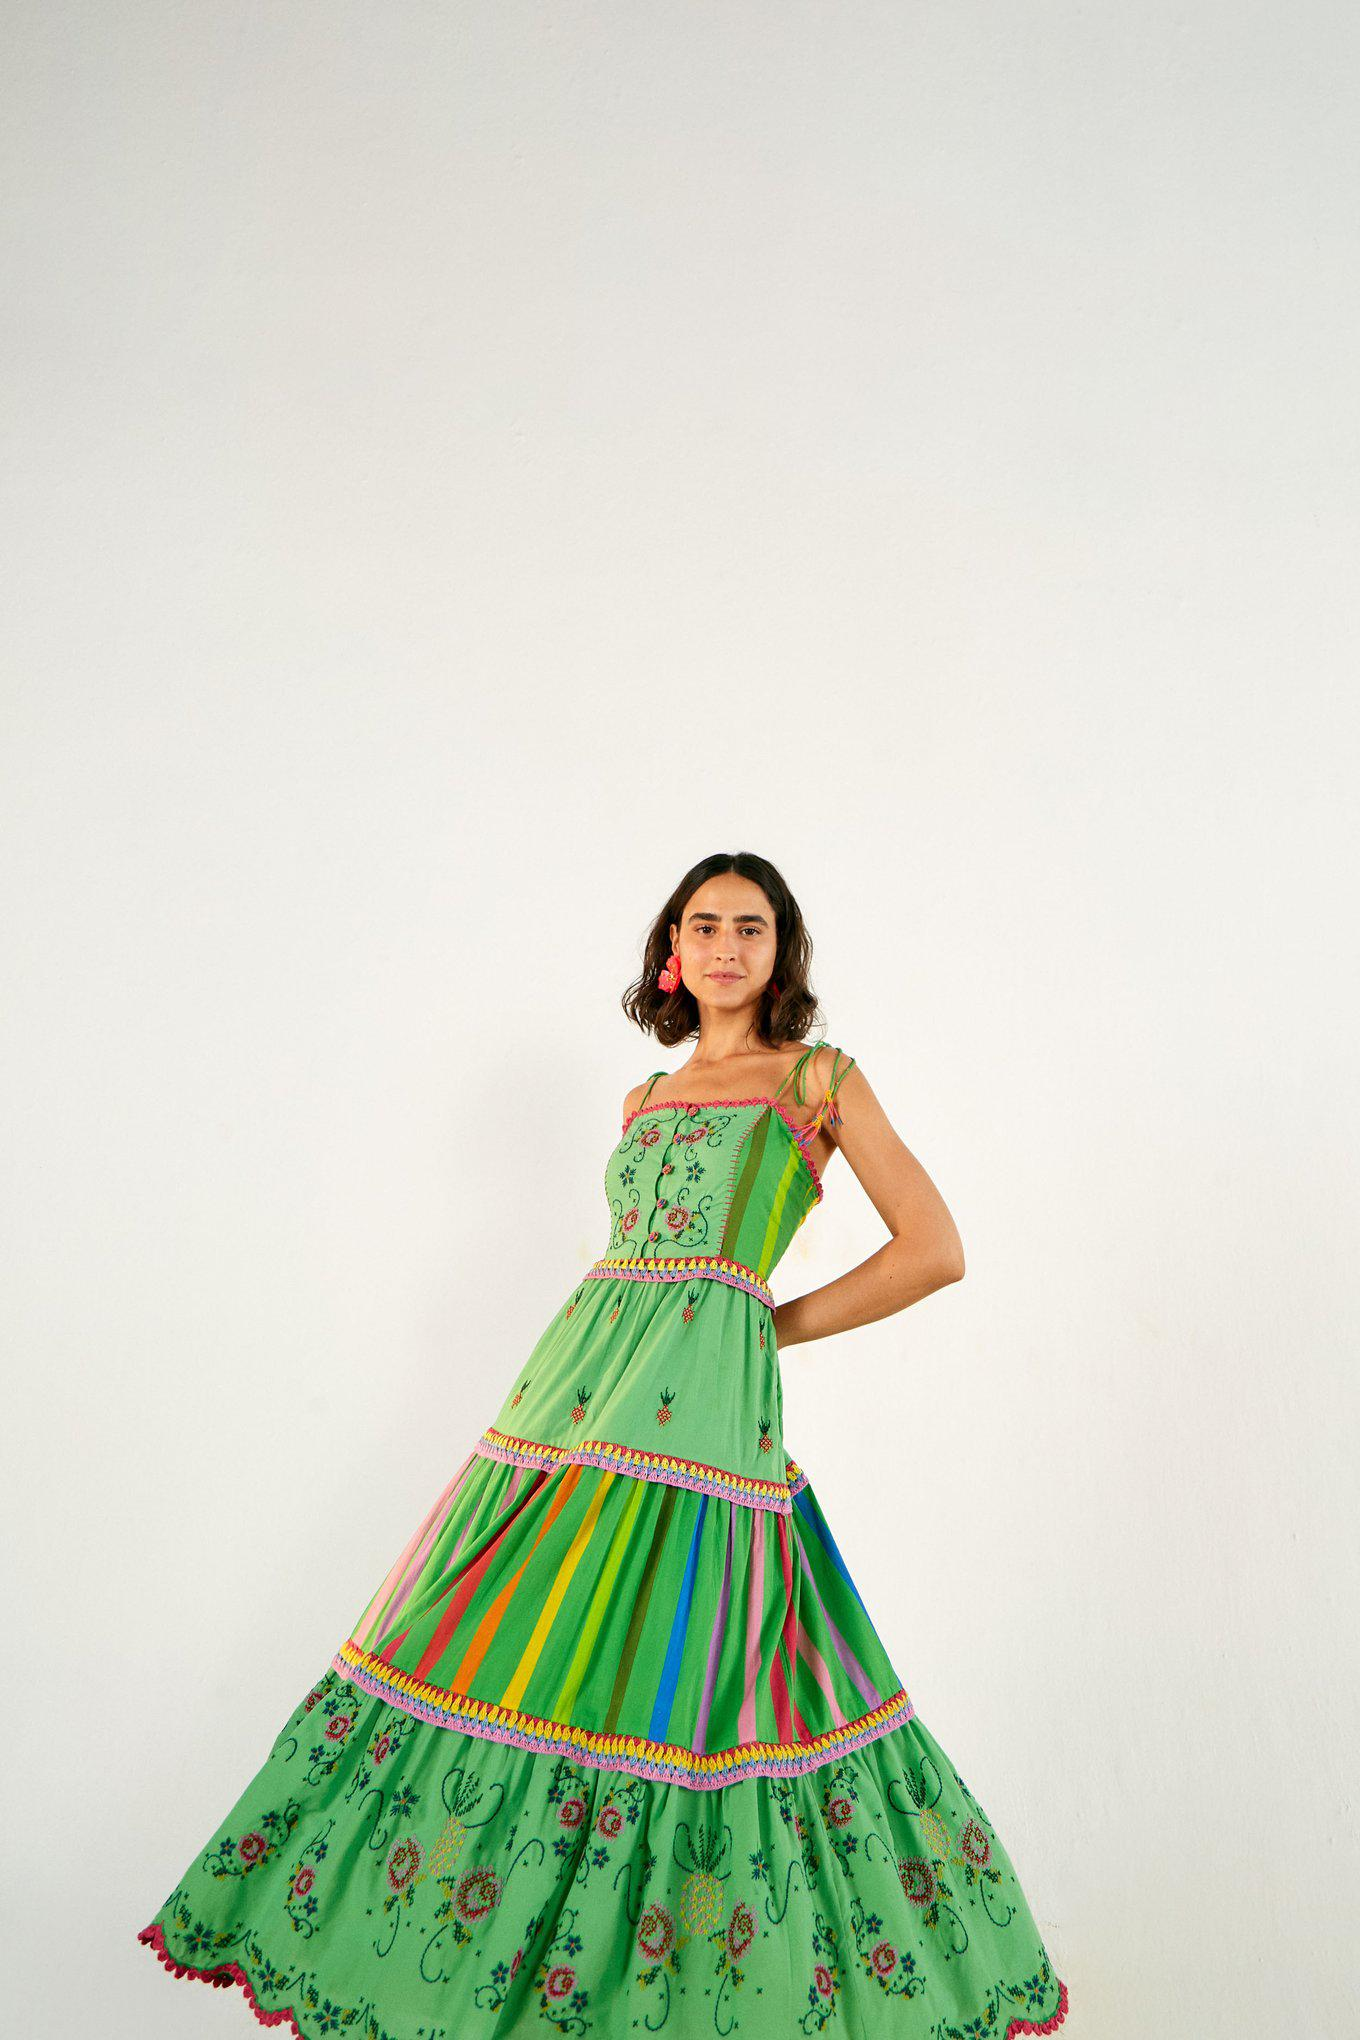 GREEN EMBROIDERED TIERED DRESS